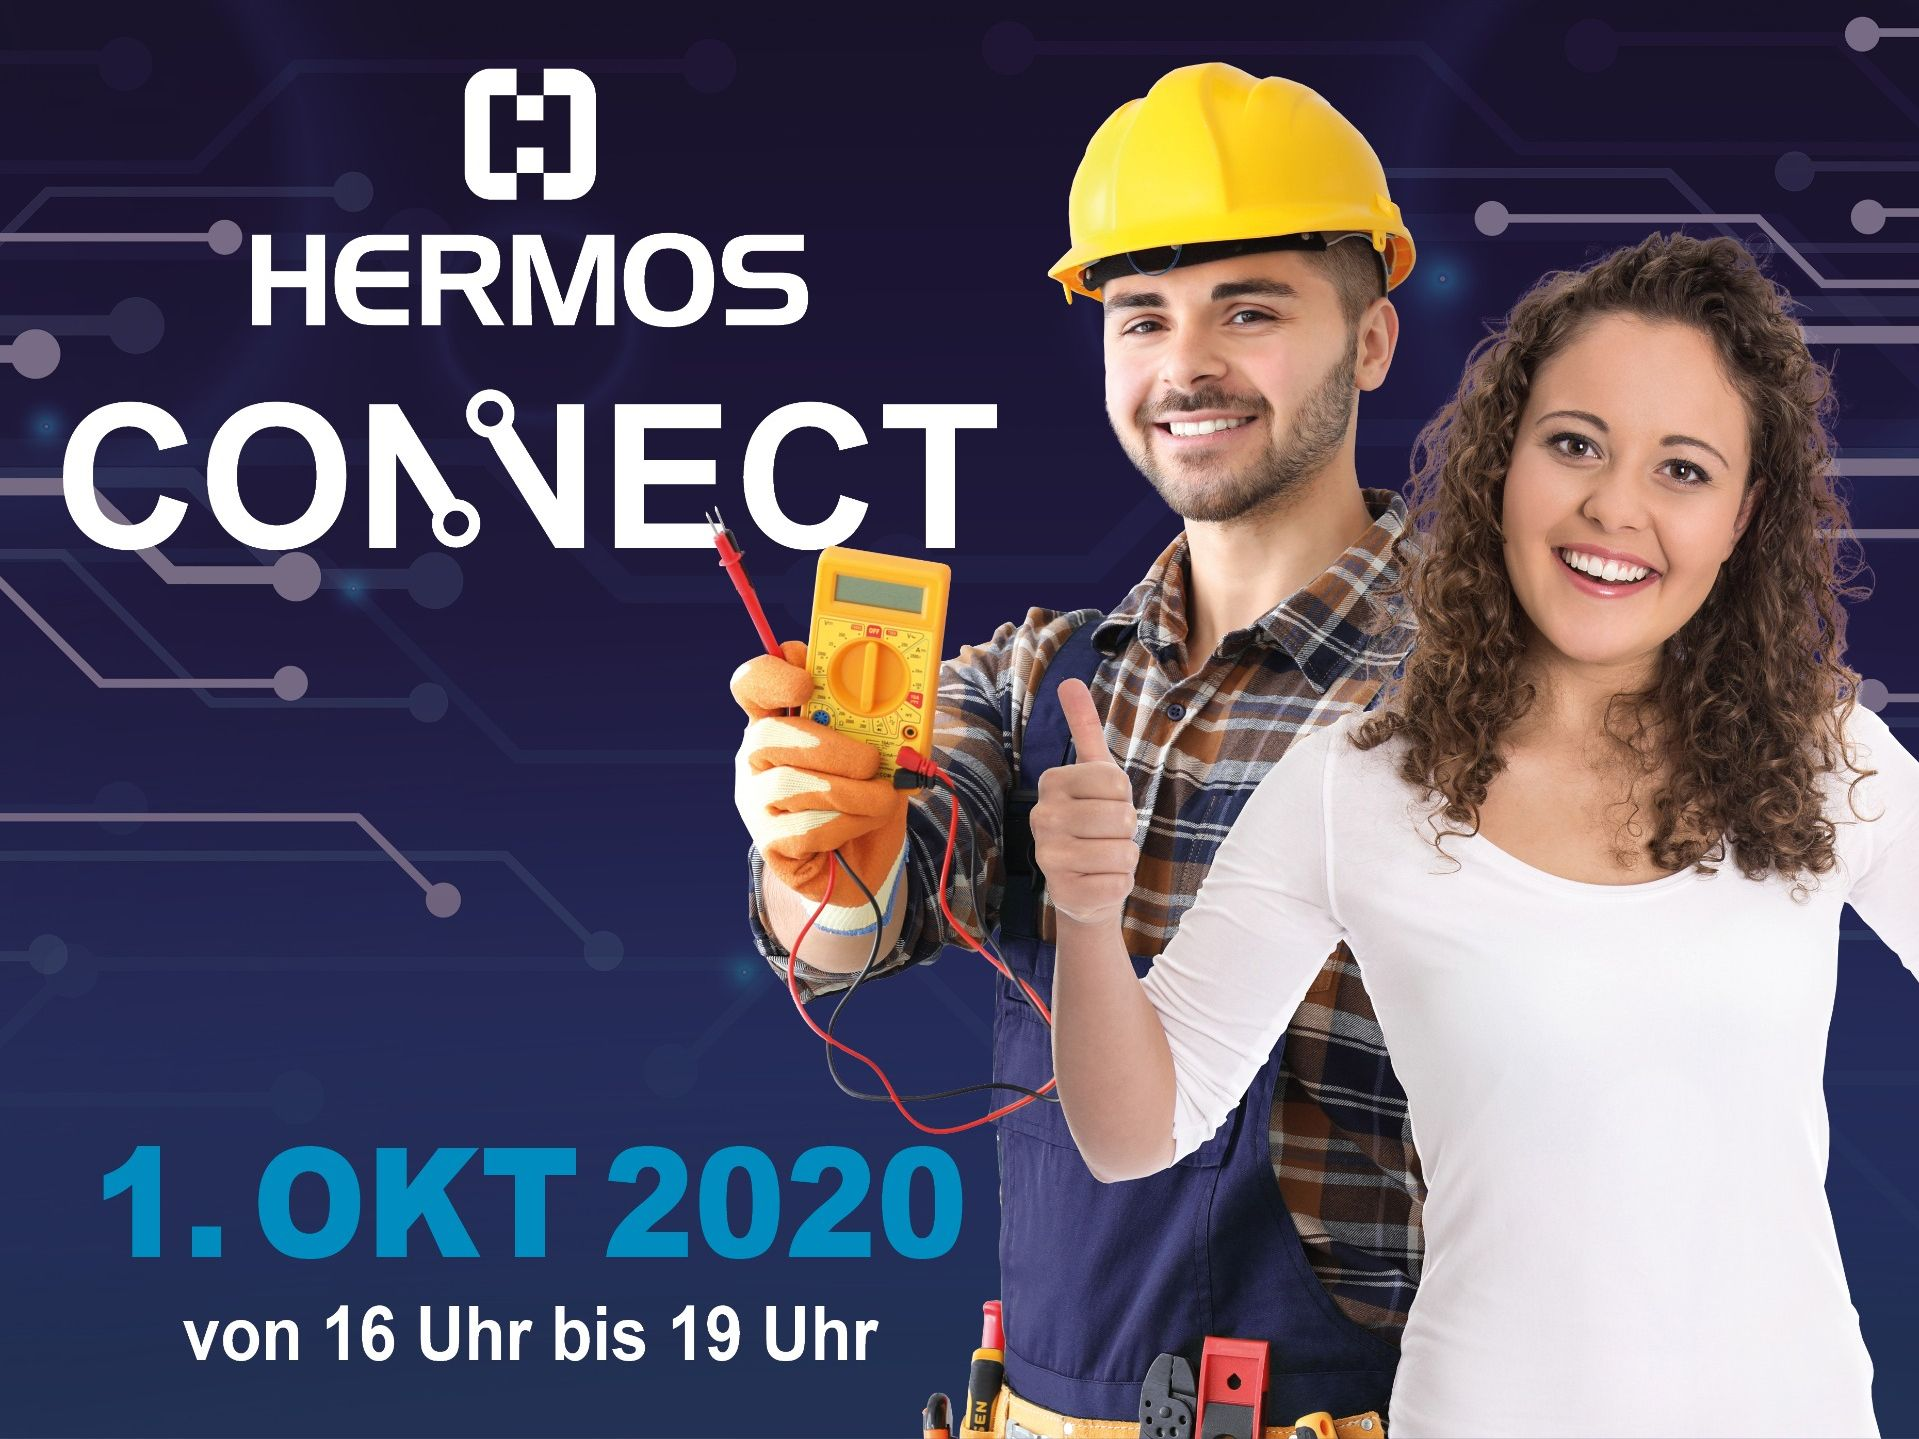 HERMOS CONNECT - Der virtuelle Azubi-Day